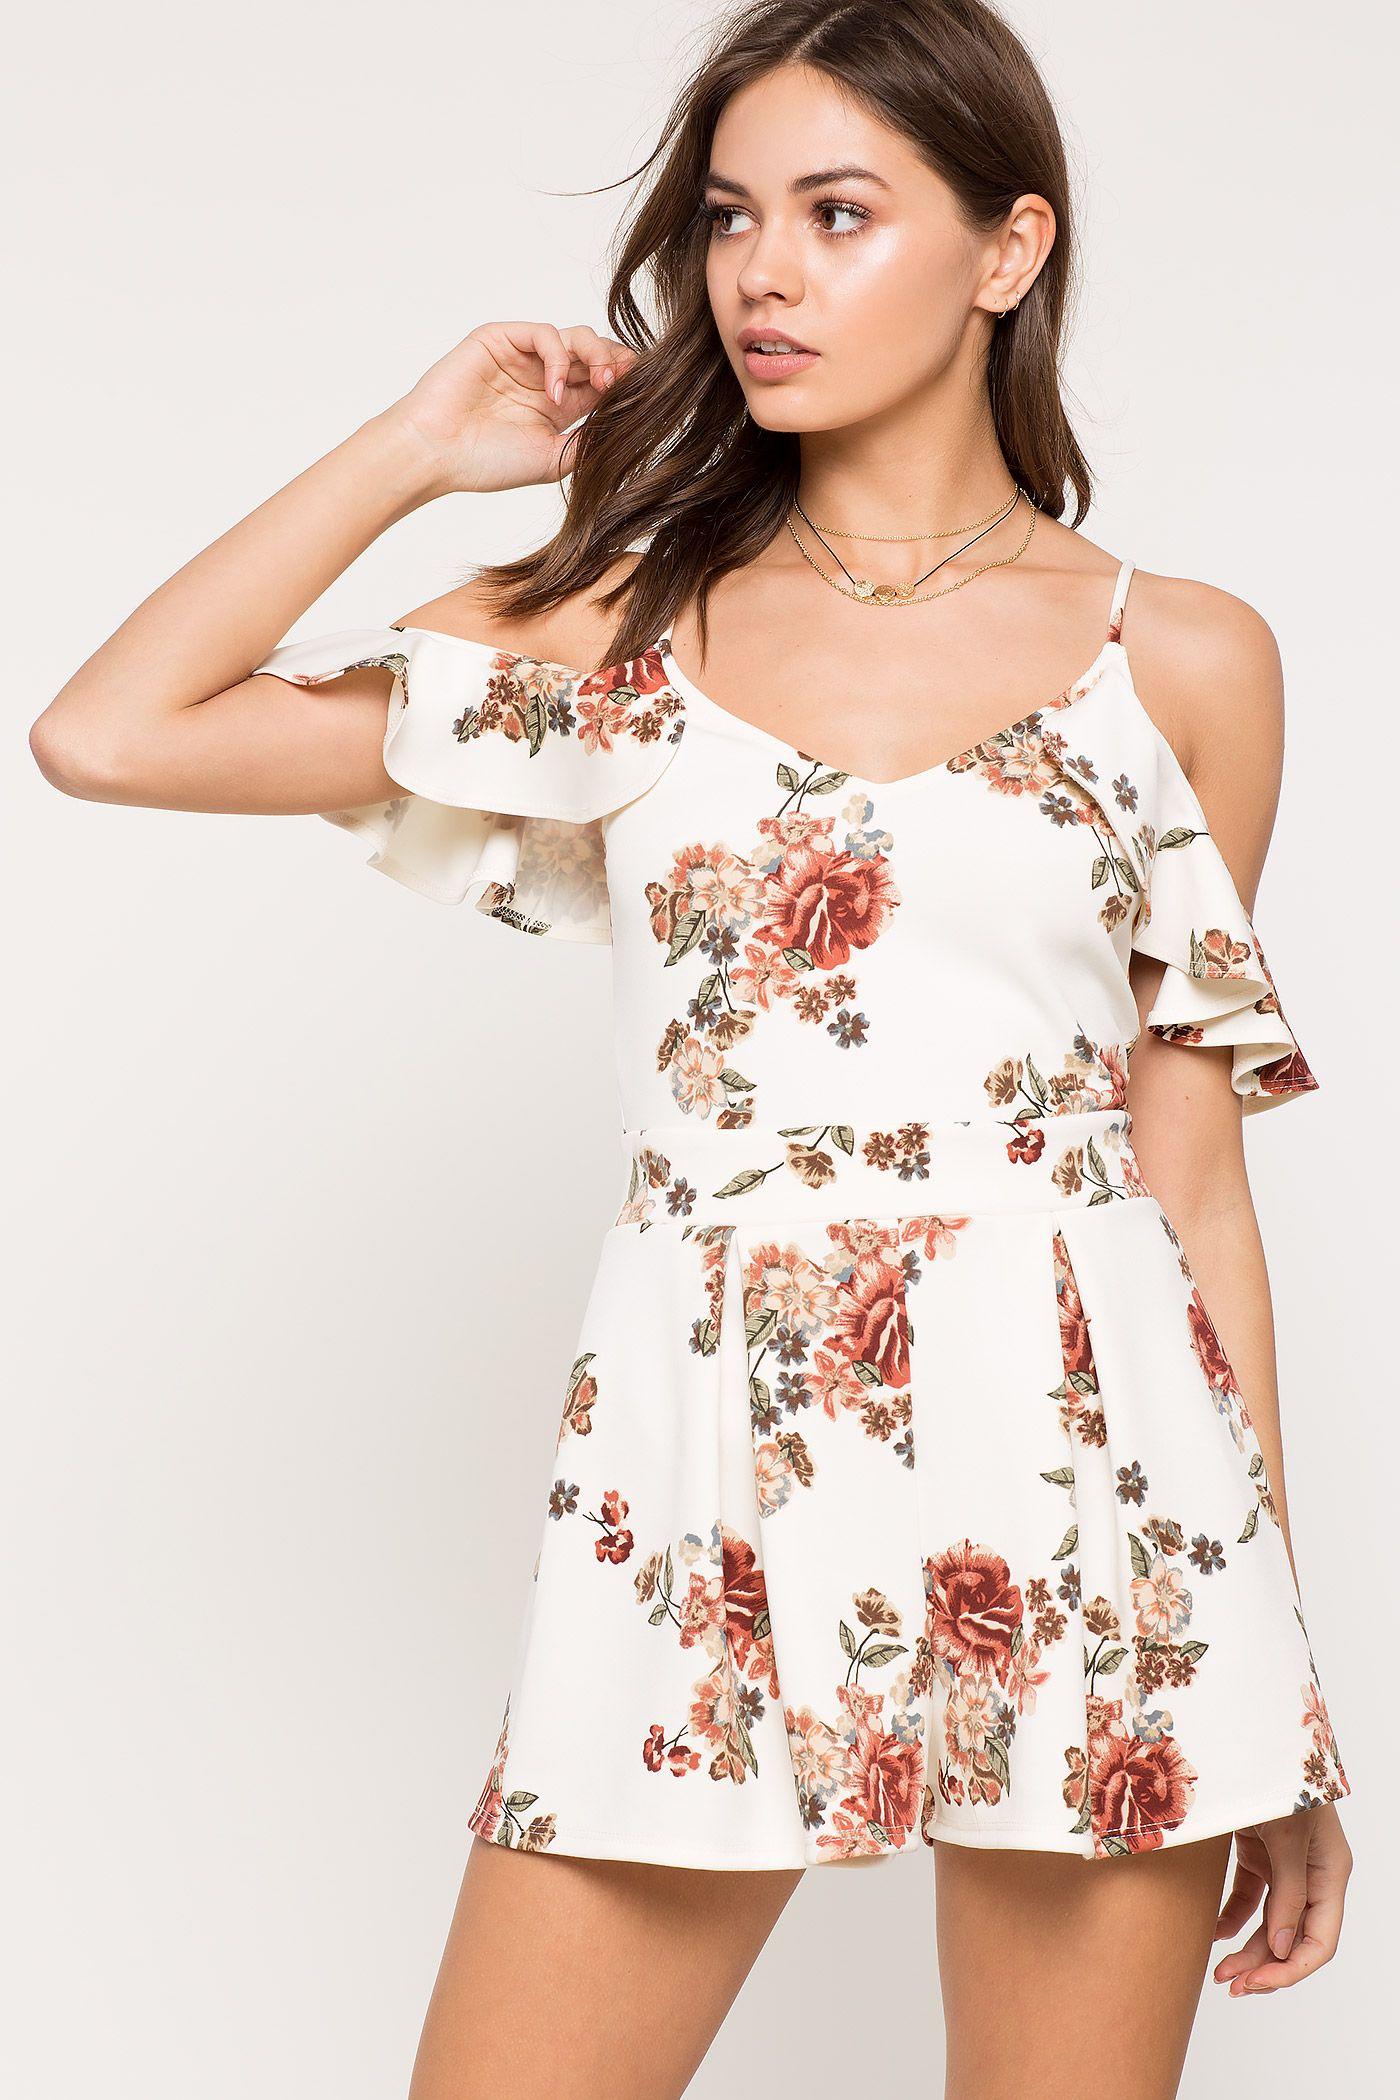 Women's Rompers | Fable Floral Romper | A'GACI